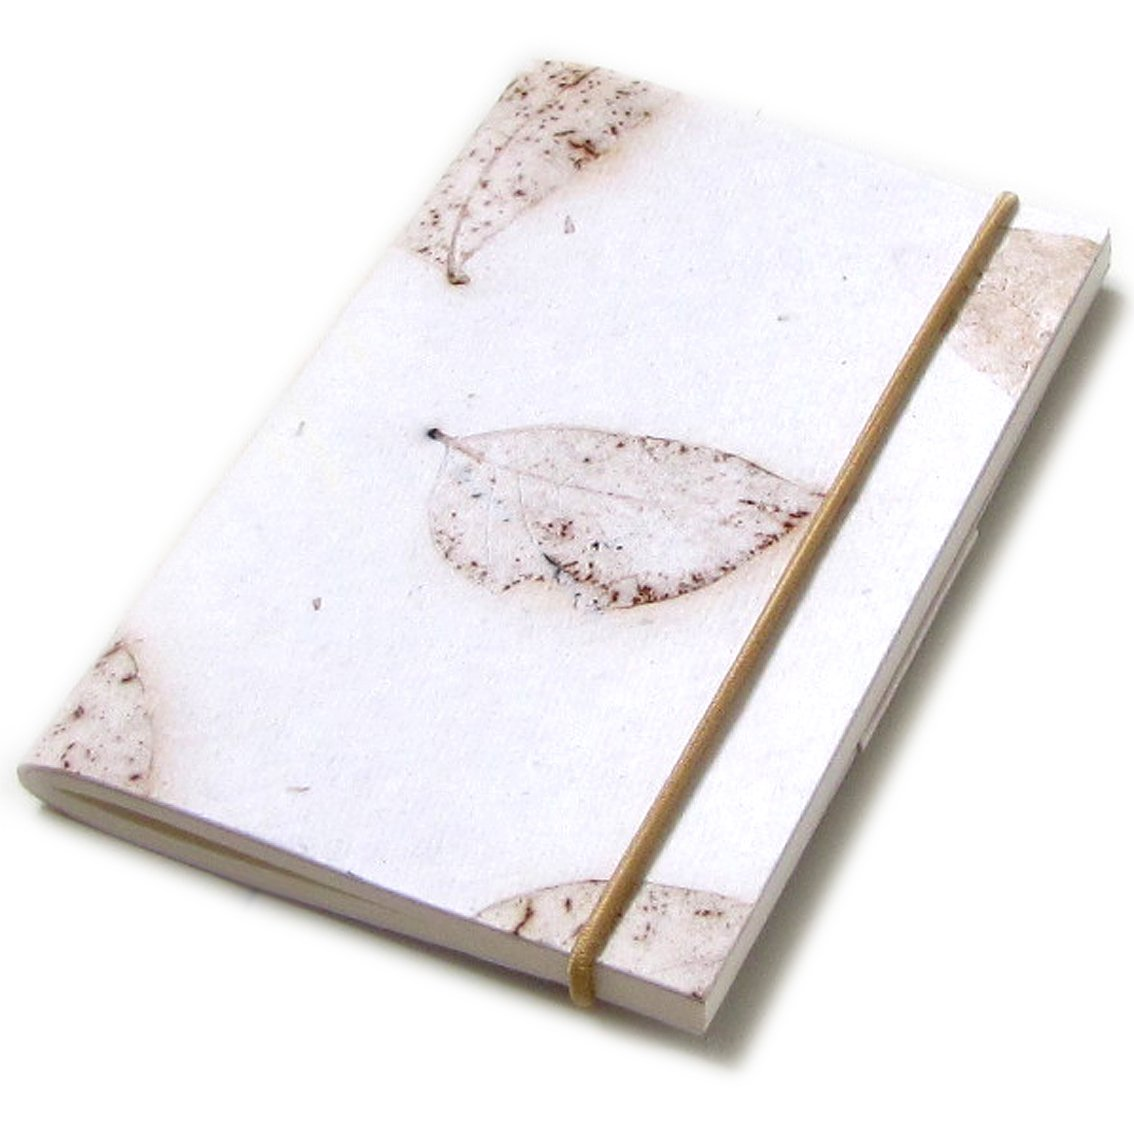 Notebook small elastic diary 3x5 40pp blank journal handmade recycled white leaf paper stationery